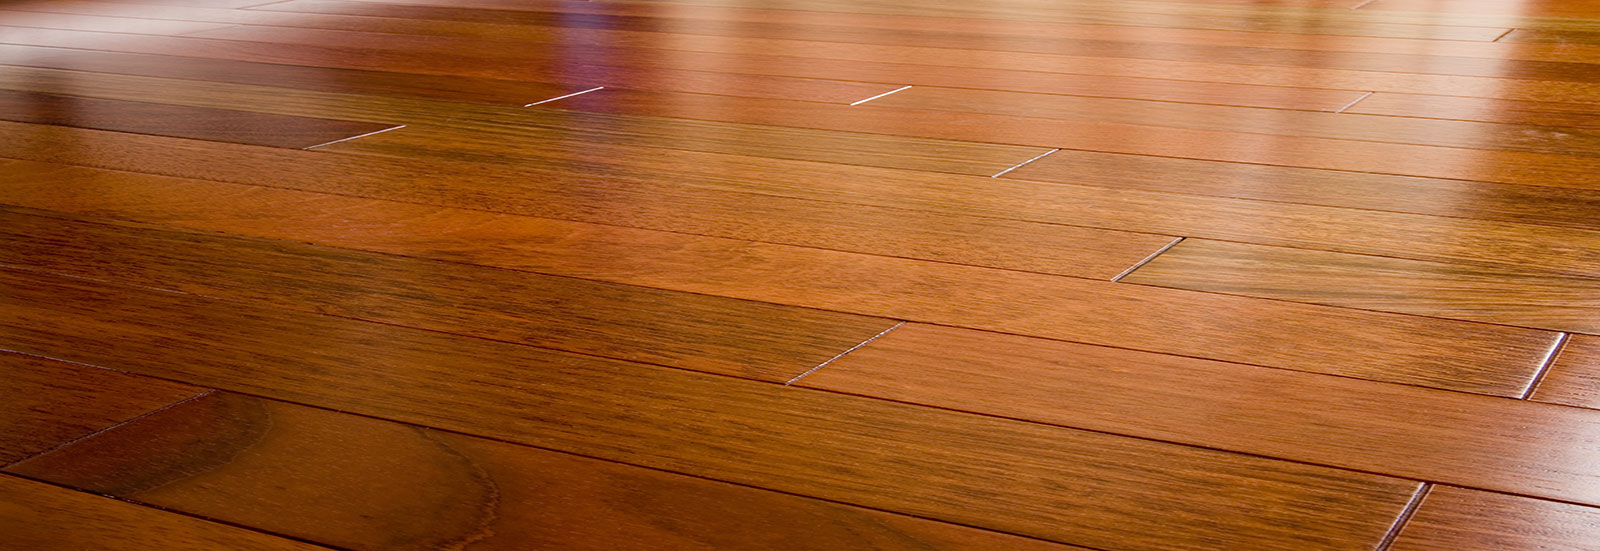 Engineered flooring limerick 2018 dodge reviews for Laminate flooring limerick